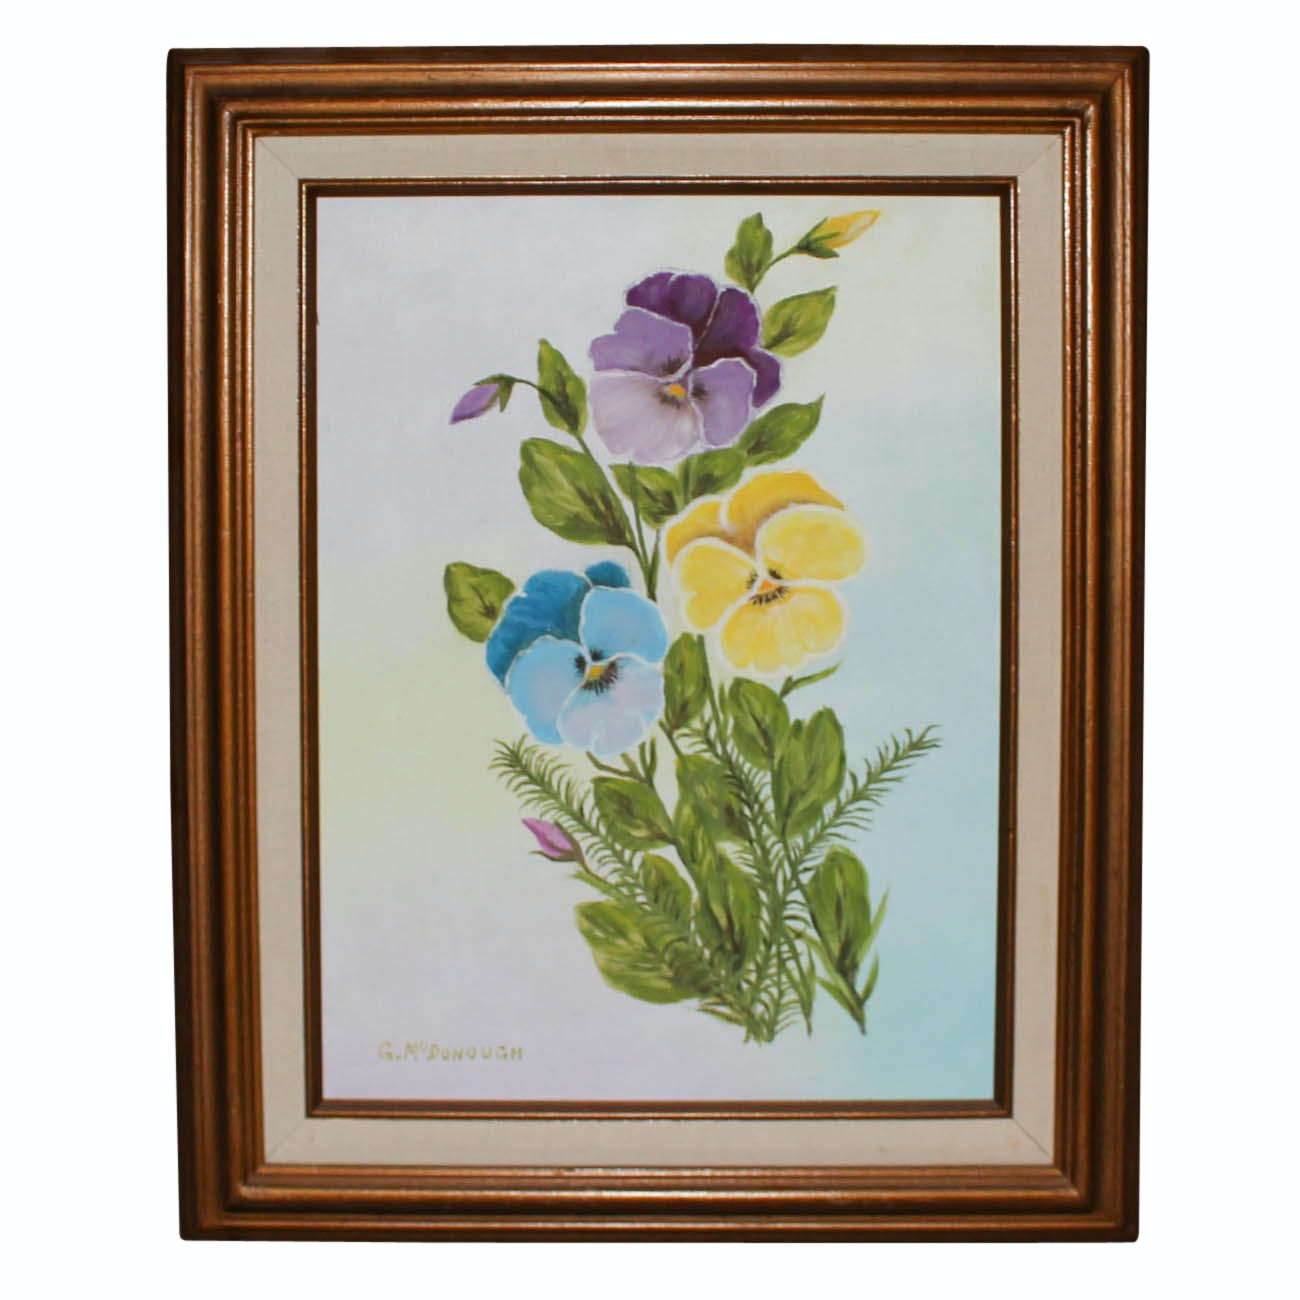 G. McDonough Oil Painting of Flowers